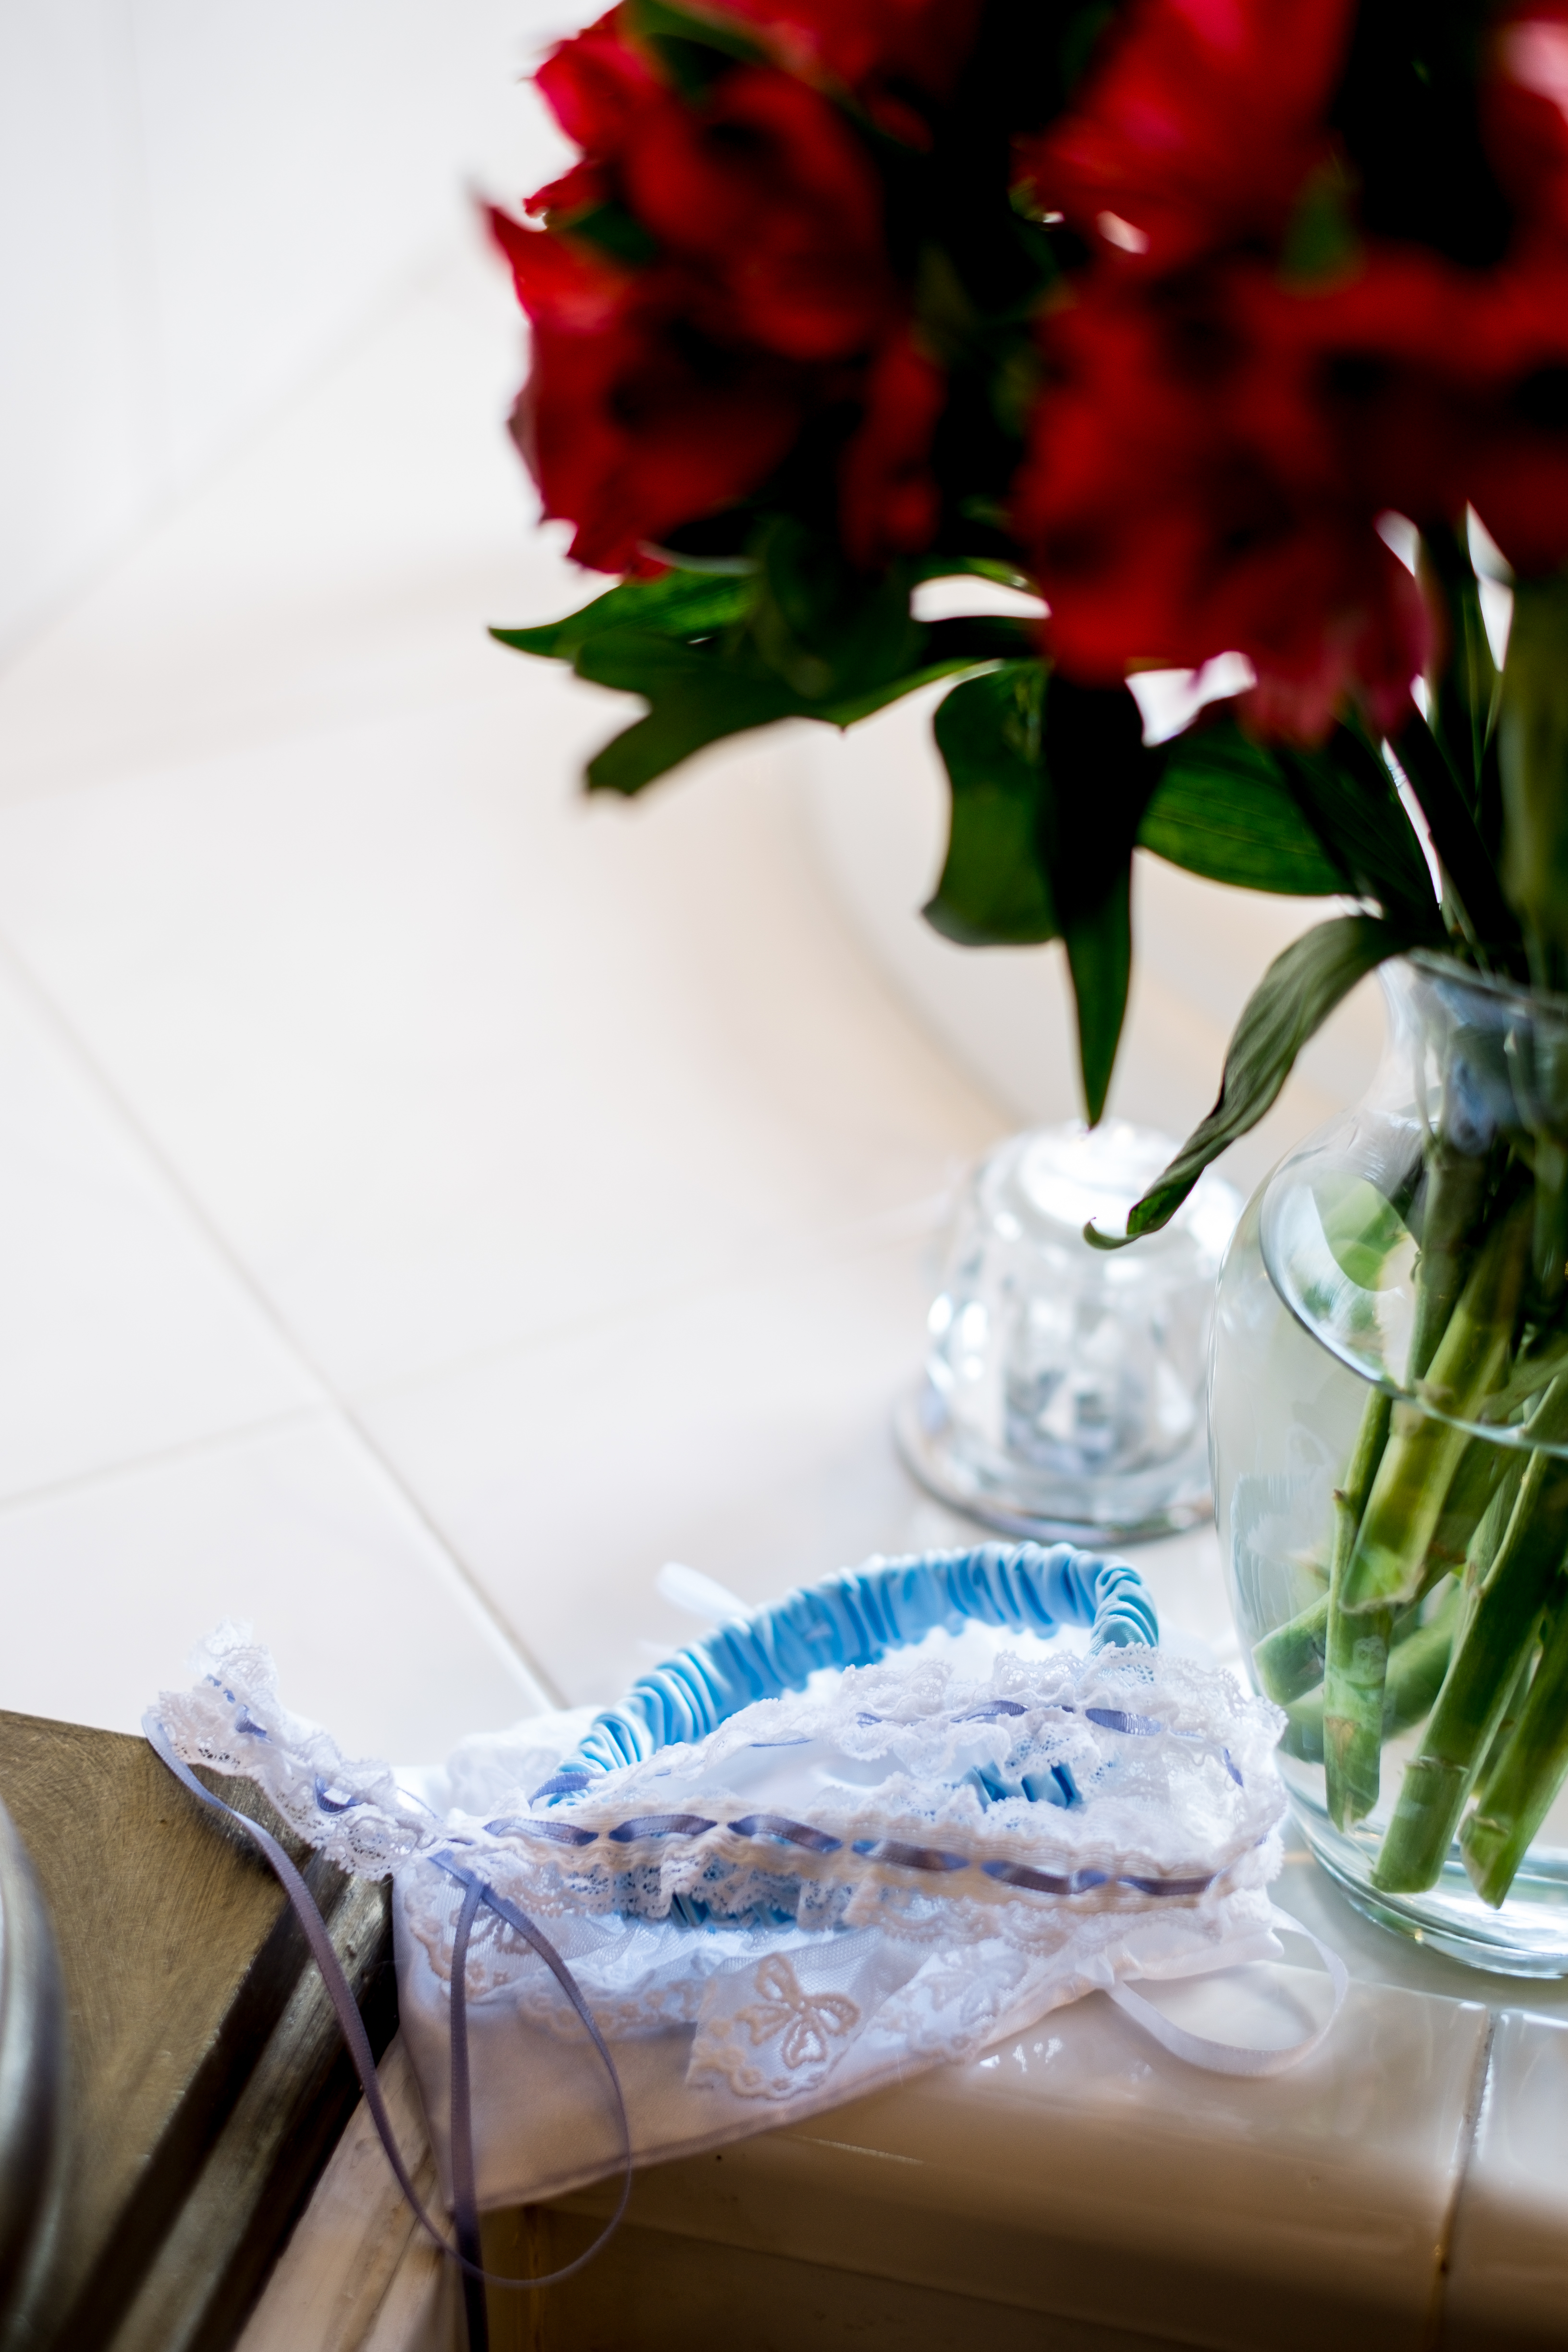 A garter and roses, sitting on a tile floor. Photo taken by Pait photography, at a wedding at Barclay Villa, in Angier, NC.